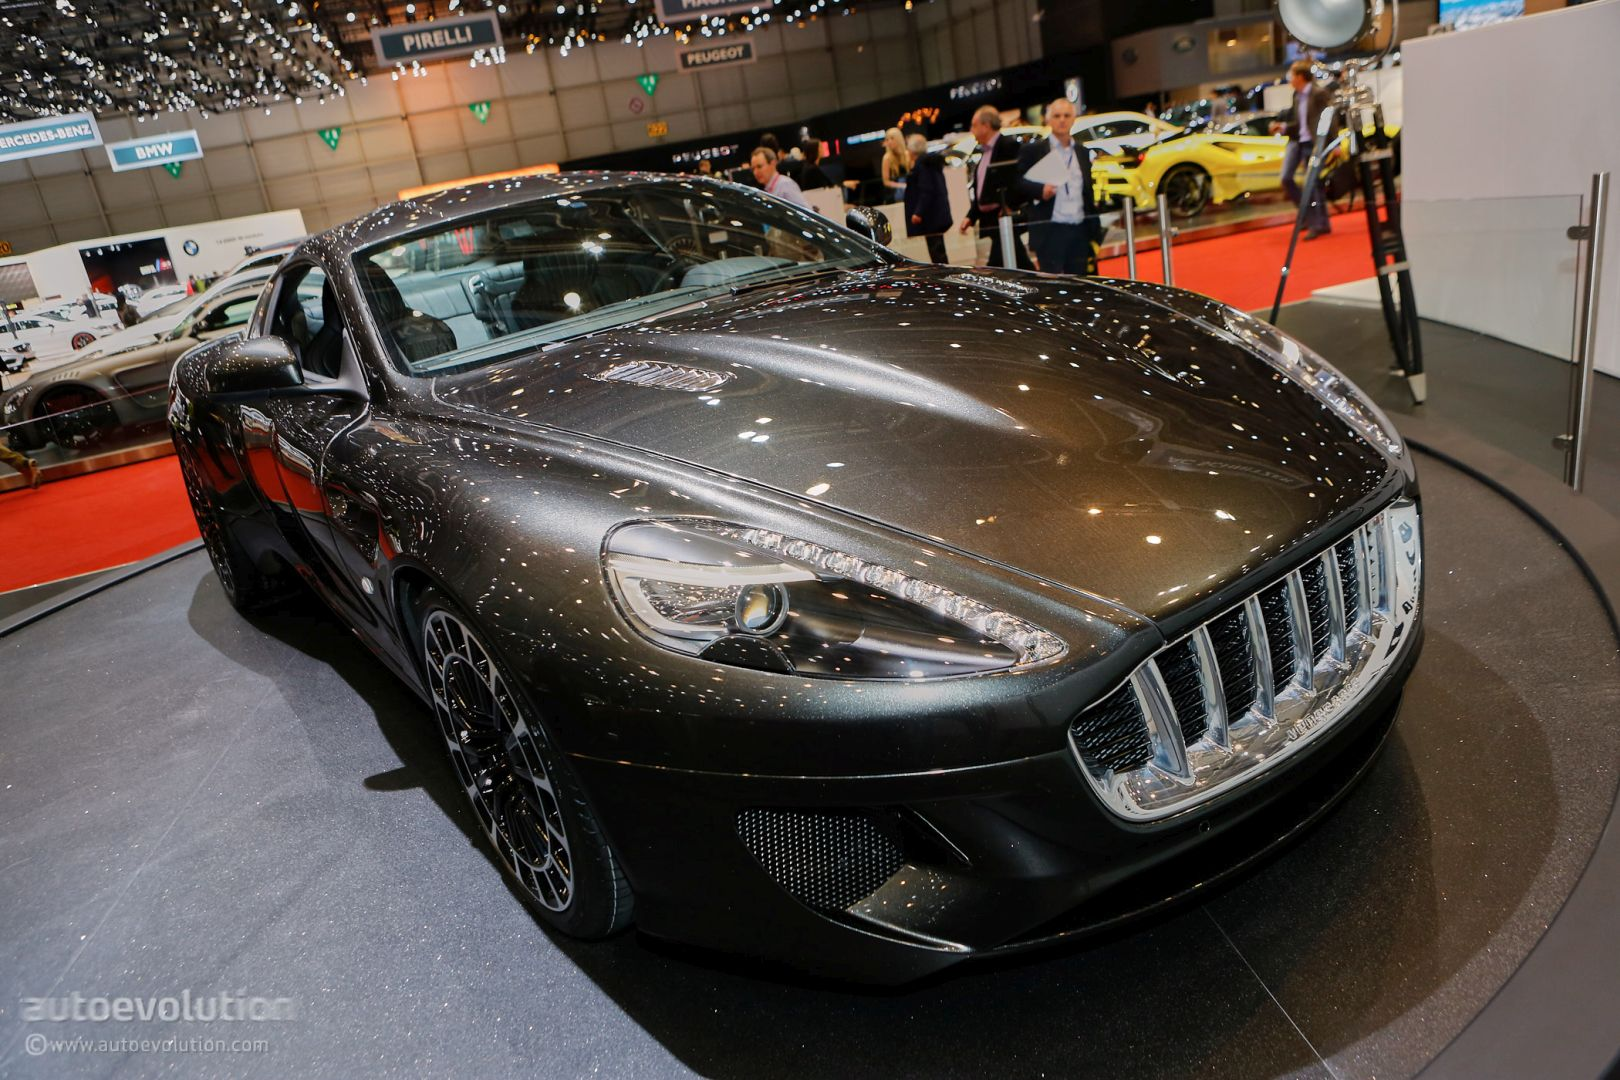 Awesome Kahn39s CoachBuilt DB9 Vengeance Has Aston Martin39s